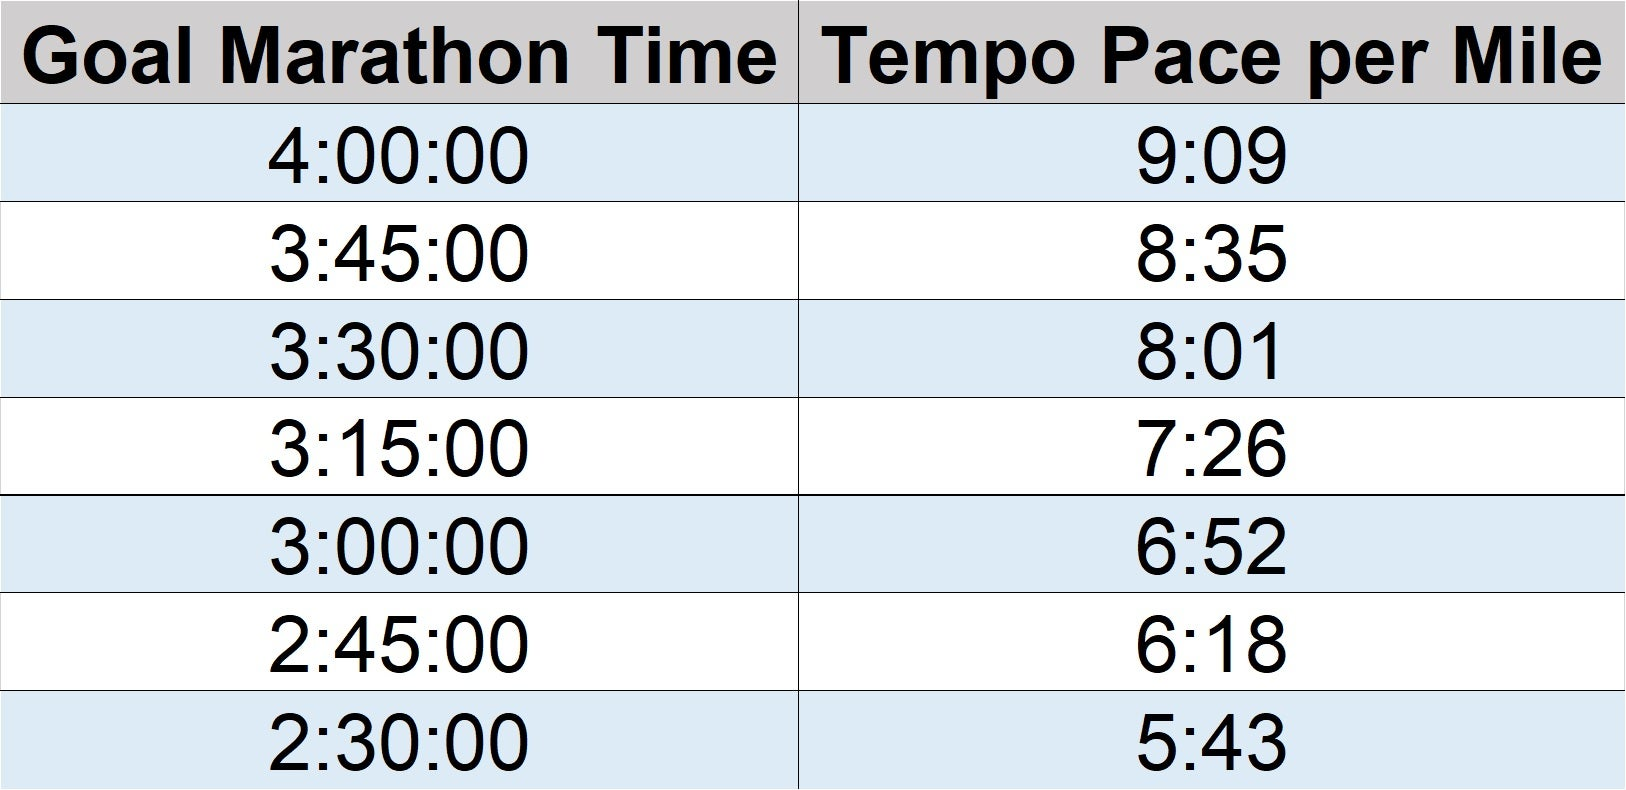 Table showing tempo paces for goal marathon times